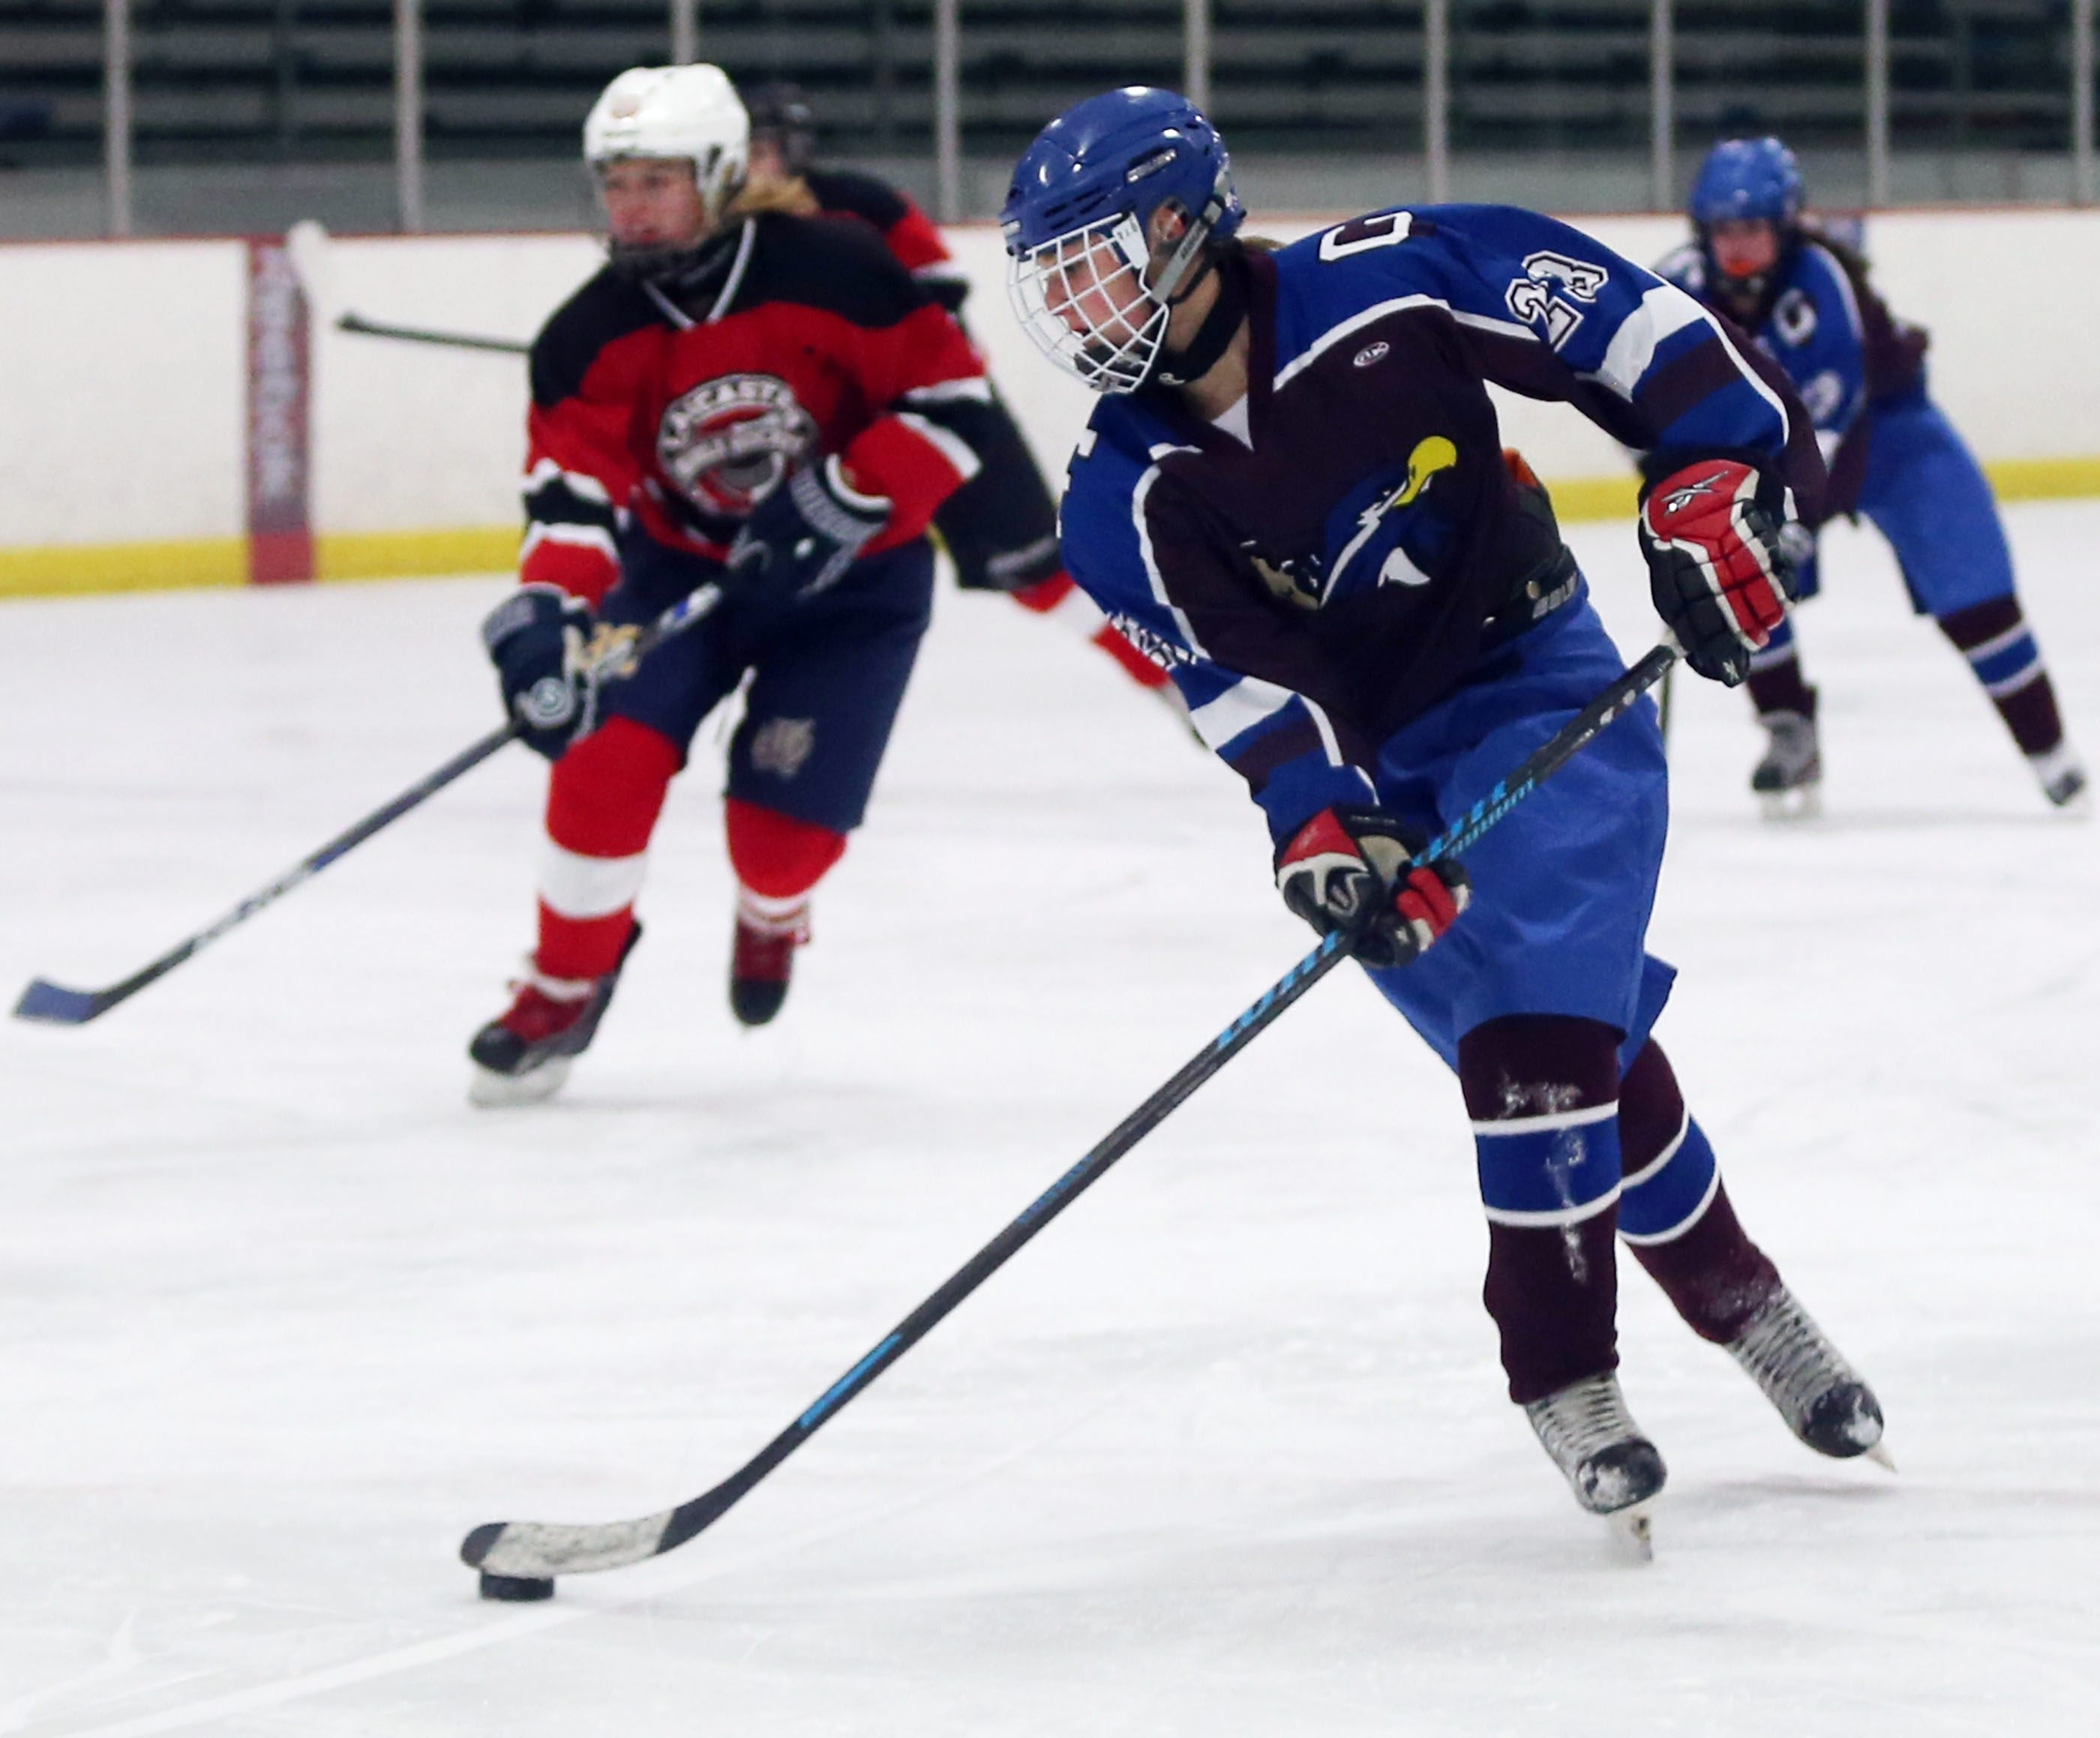 Orchard Park/Frontier's Haley Tatar scores a goal in a 6-0 triumph over Lancaster/Iroquois at Holiday Twin Rinks in Depew.